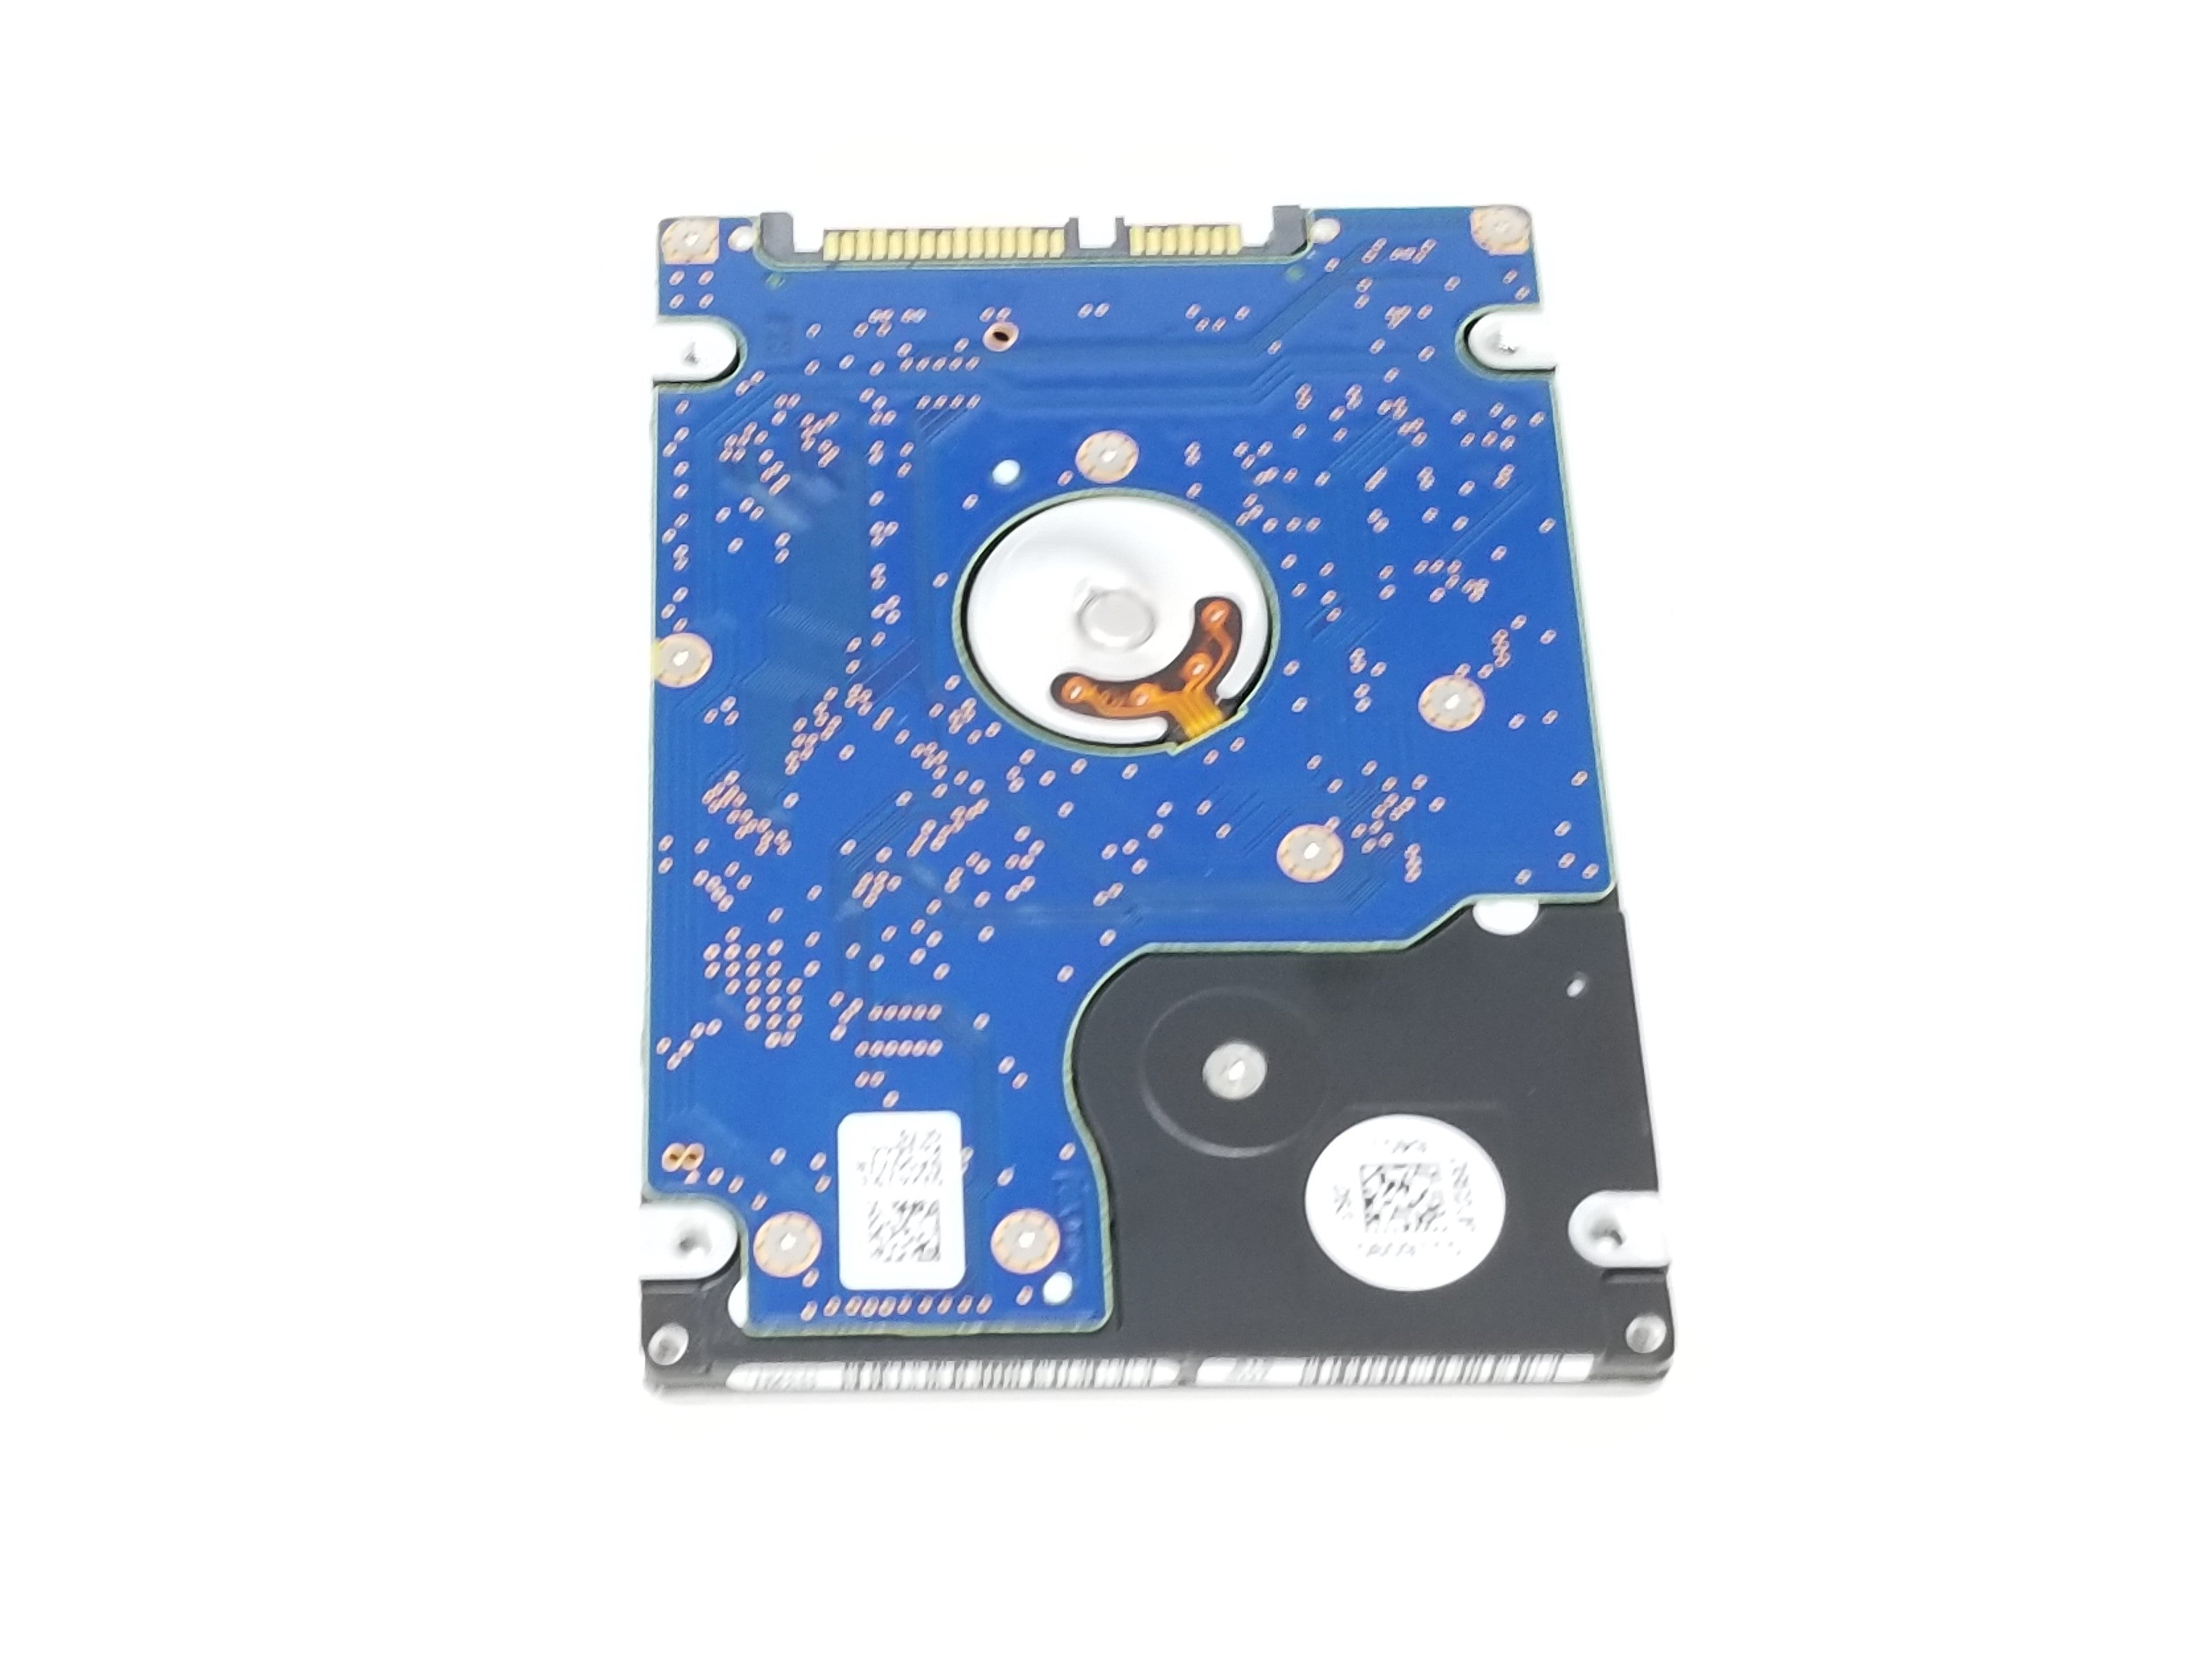 "Mac Mini A1347 (Late 2014) Hard Drive 2.5"" 500GB / 5400 RPM - 655-1730G / 0J38085"